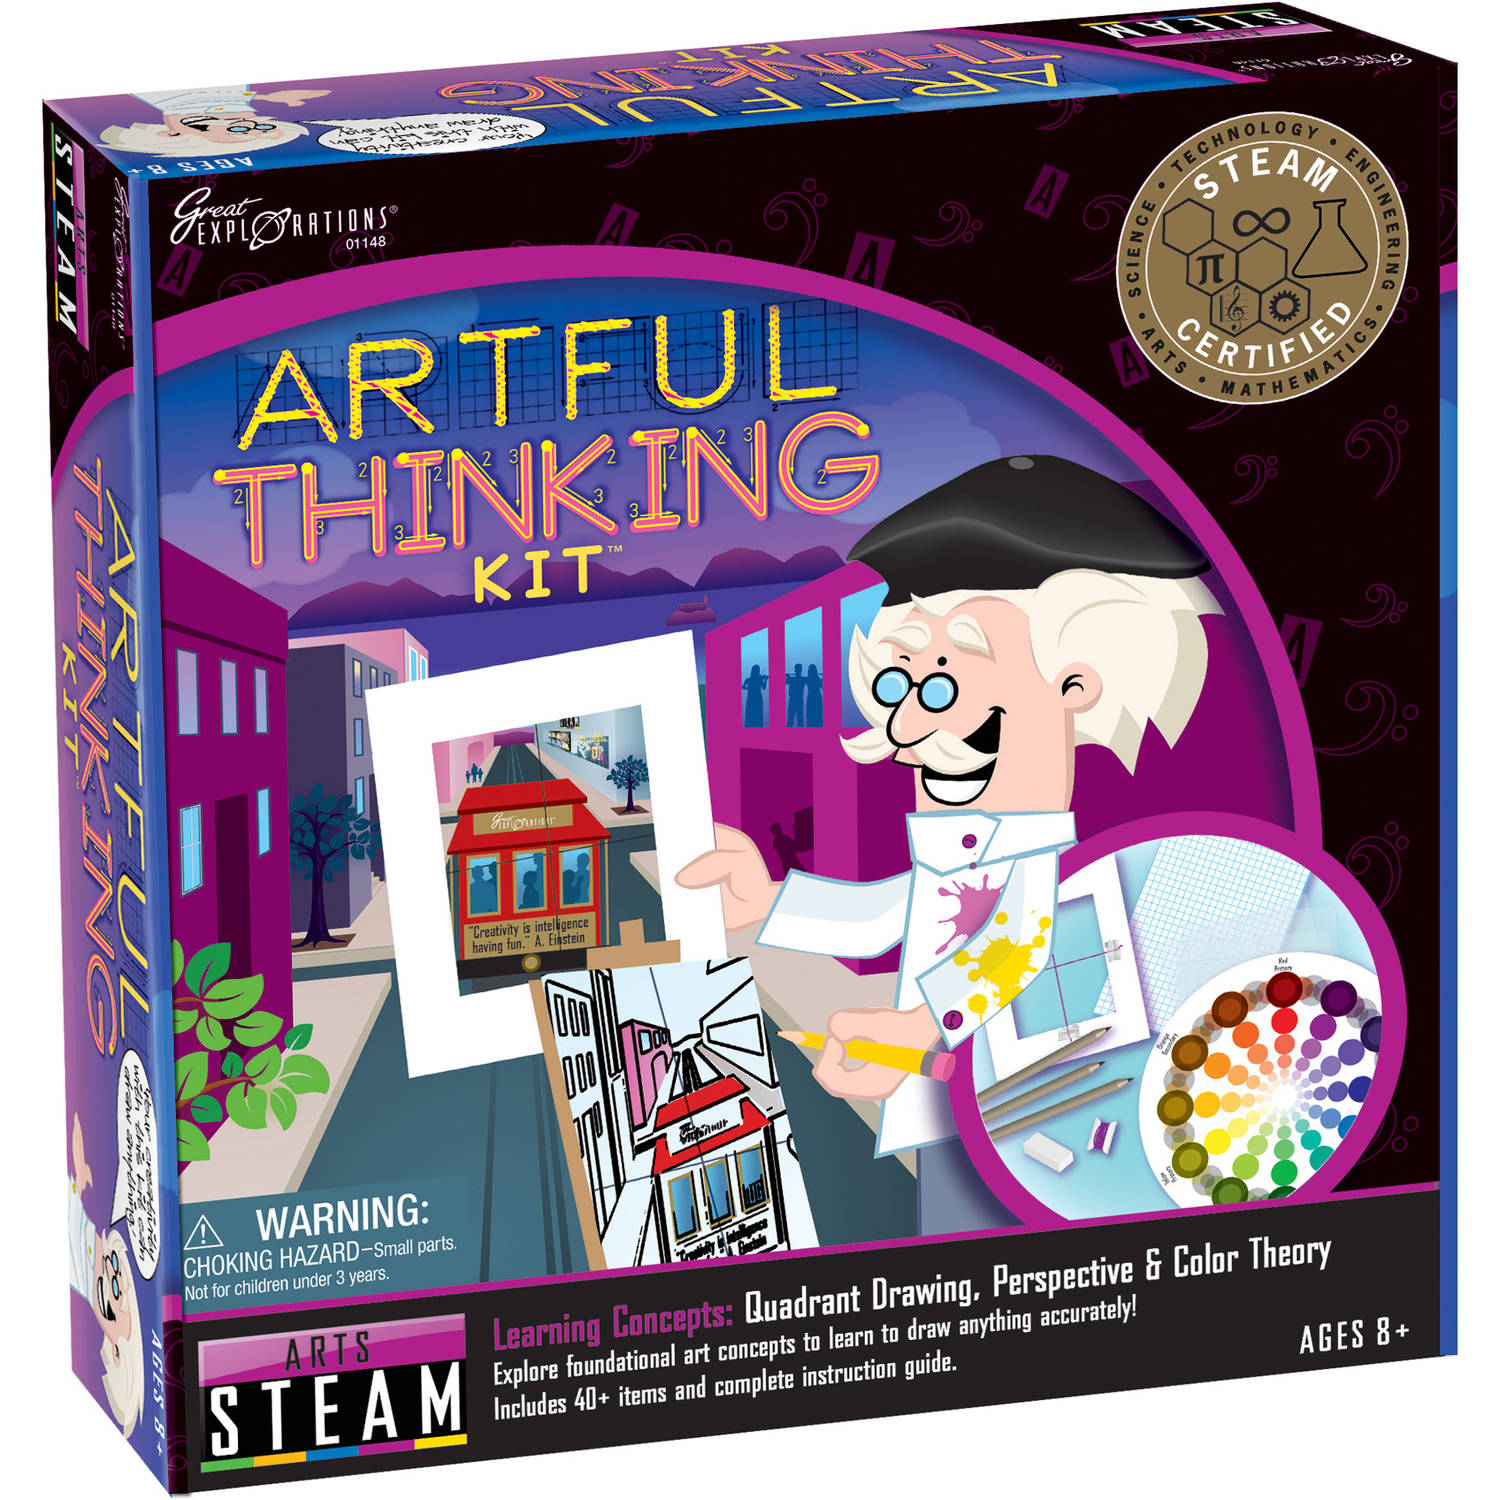 STEAM Learning System, Arts: Artful Thinking Kit